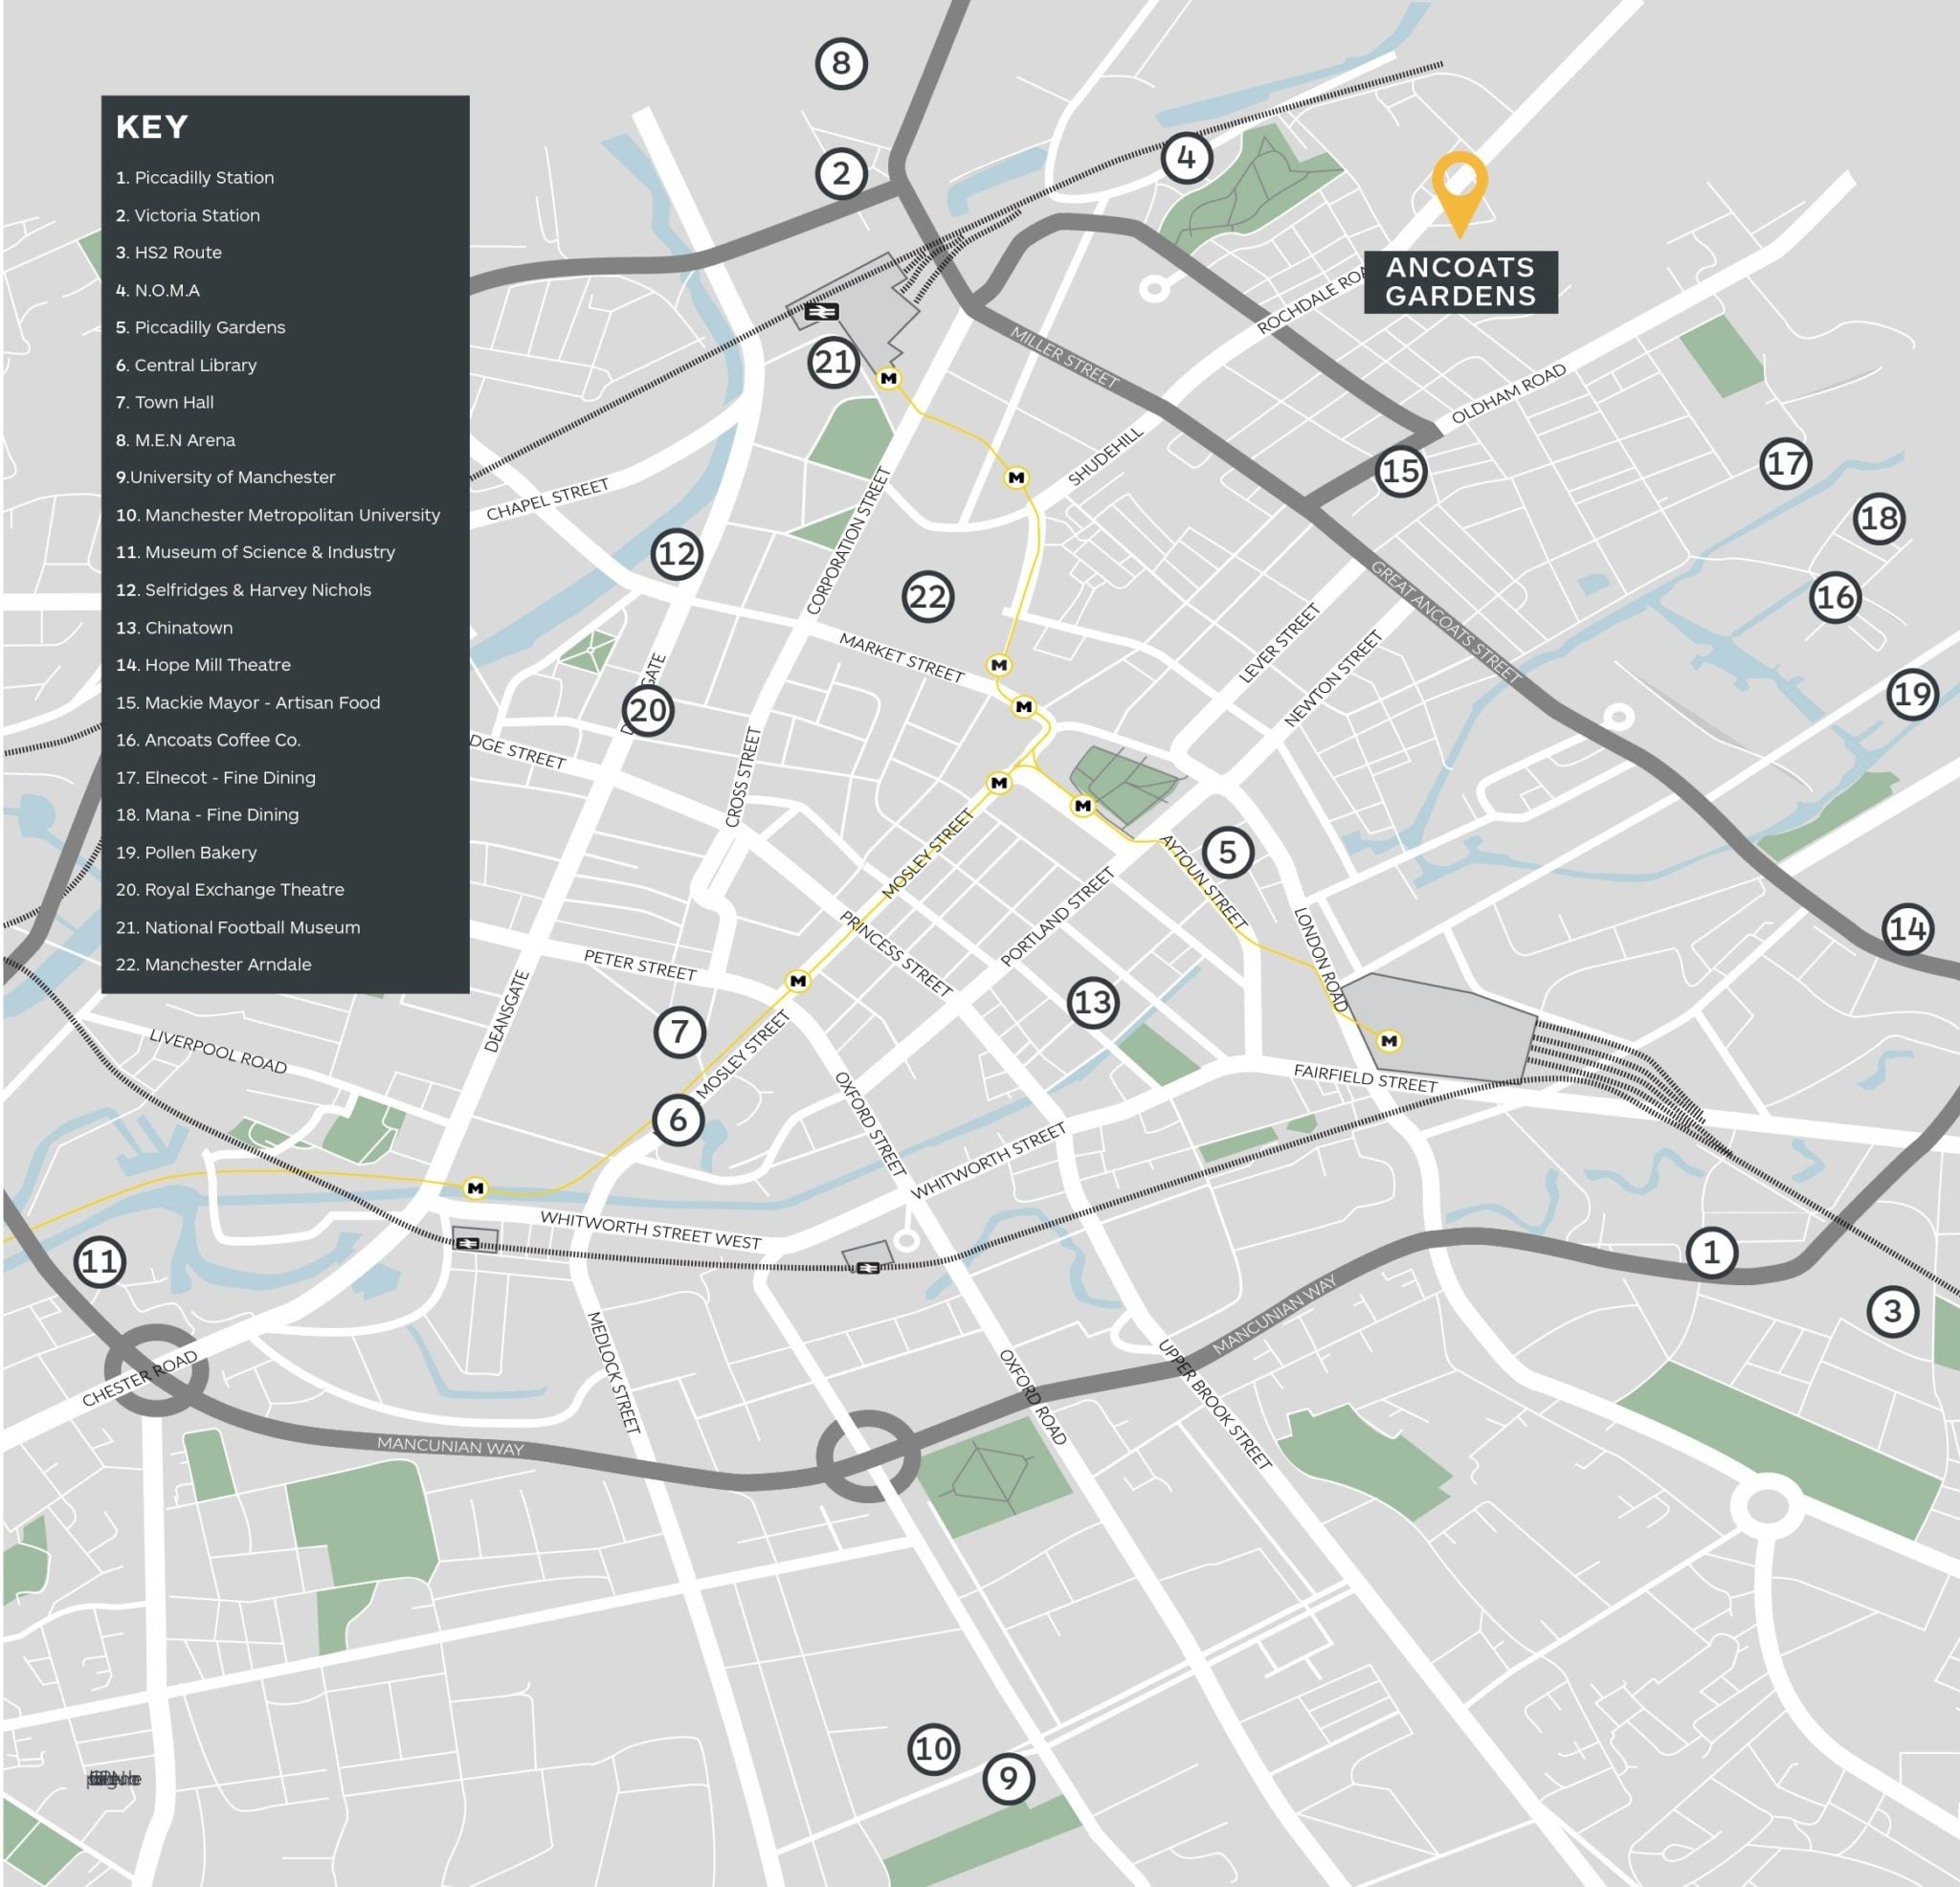 Ancoats-Gardens-map